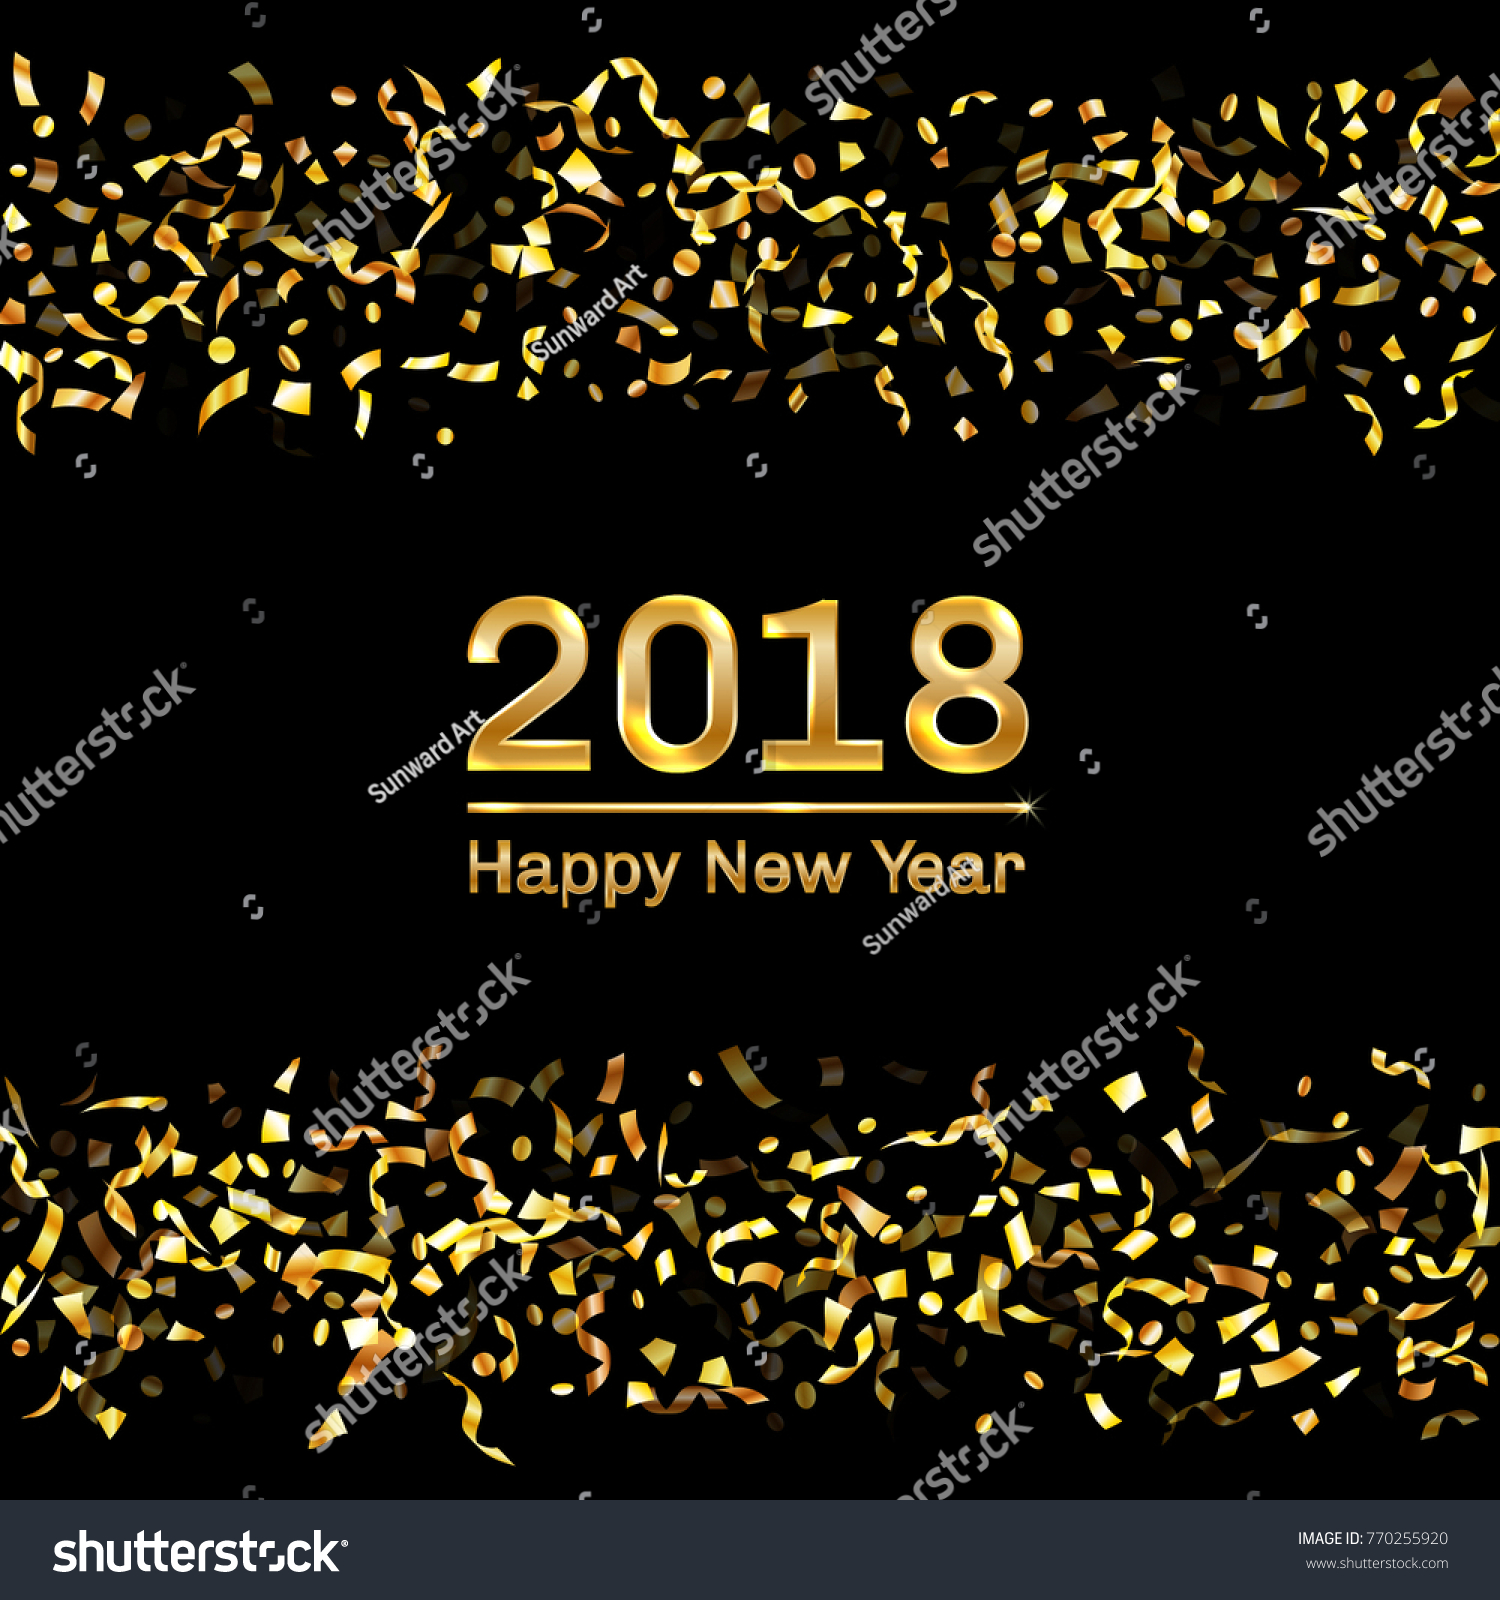 modern 2018 happy new year card with gold flying confetti and streamers foil texture gold